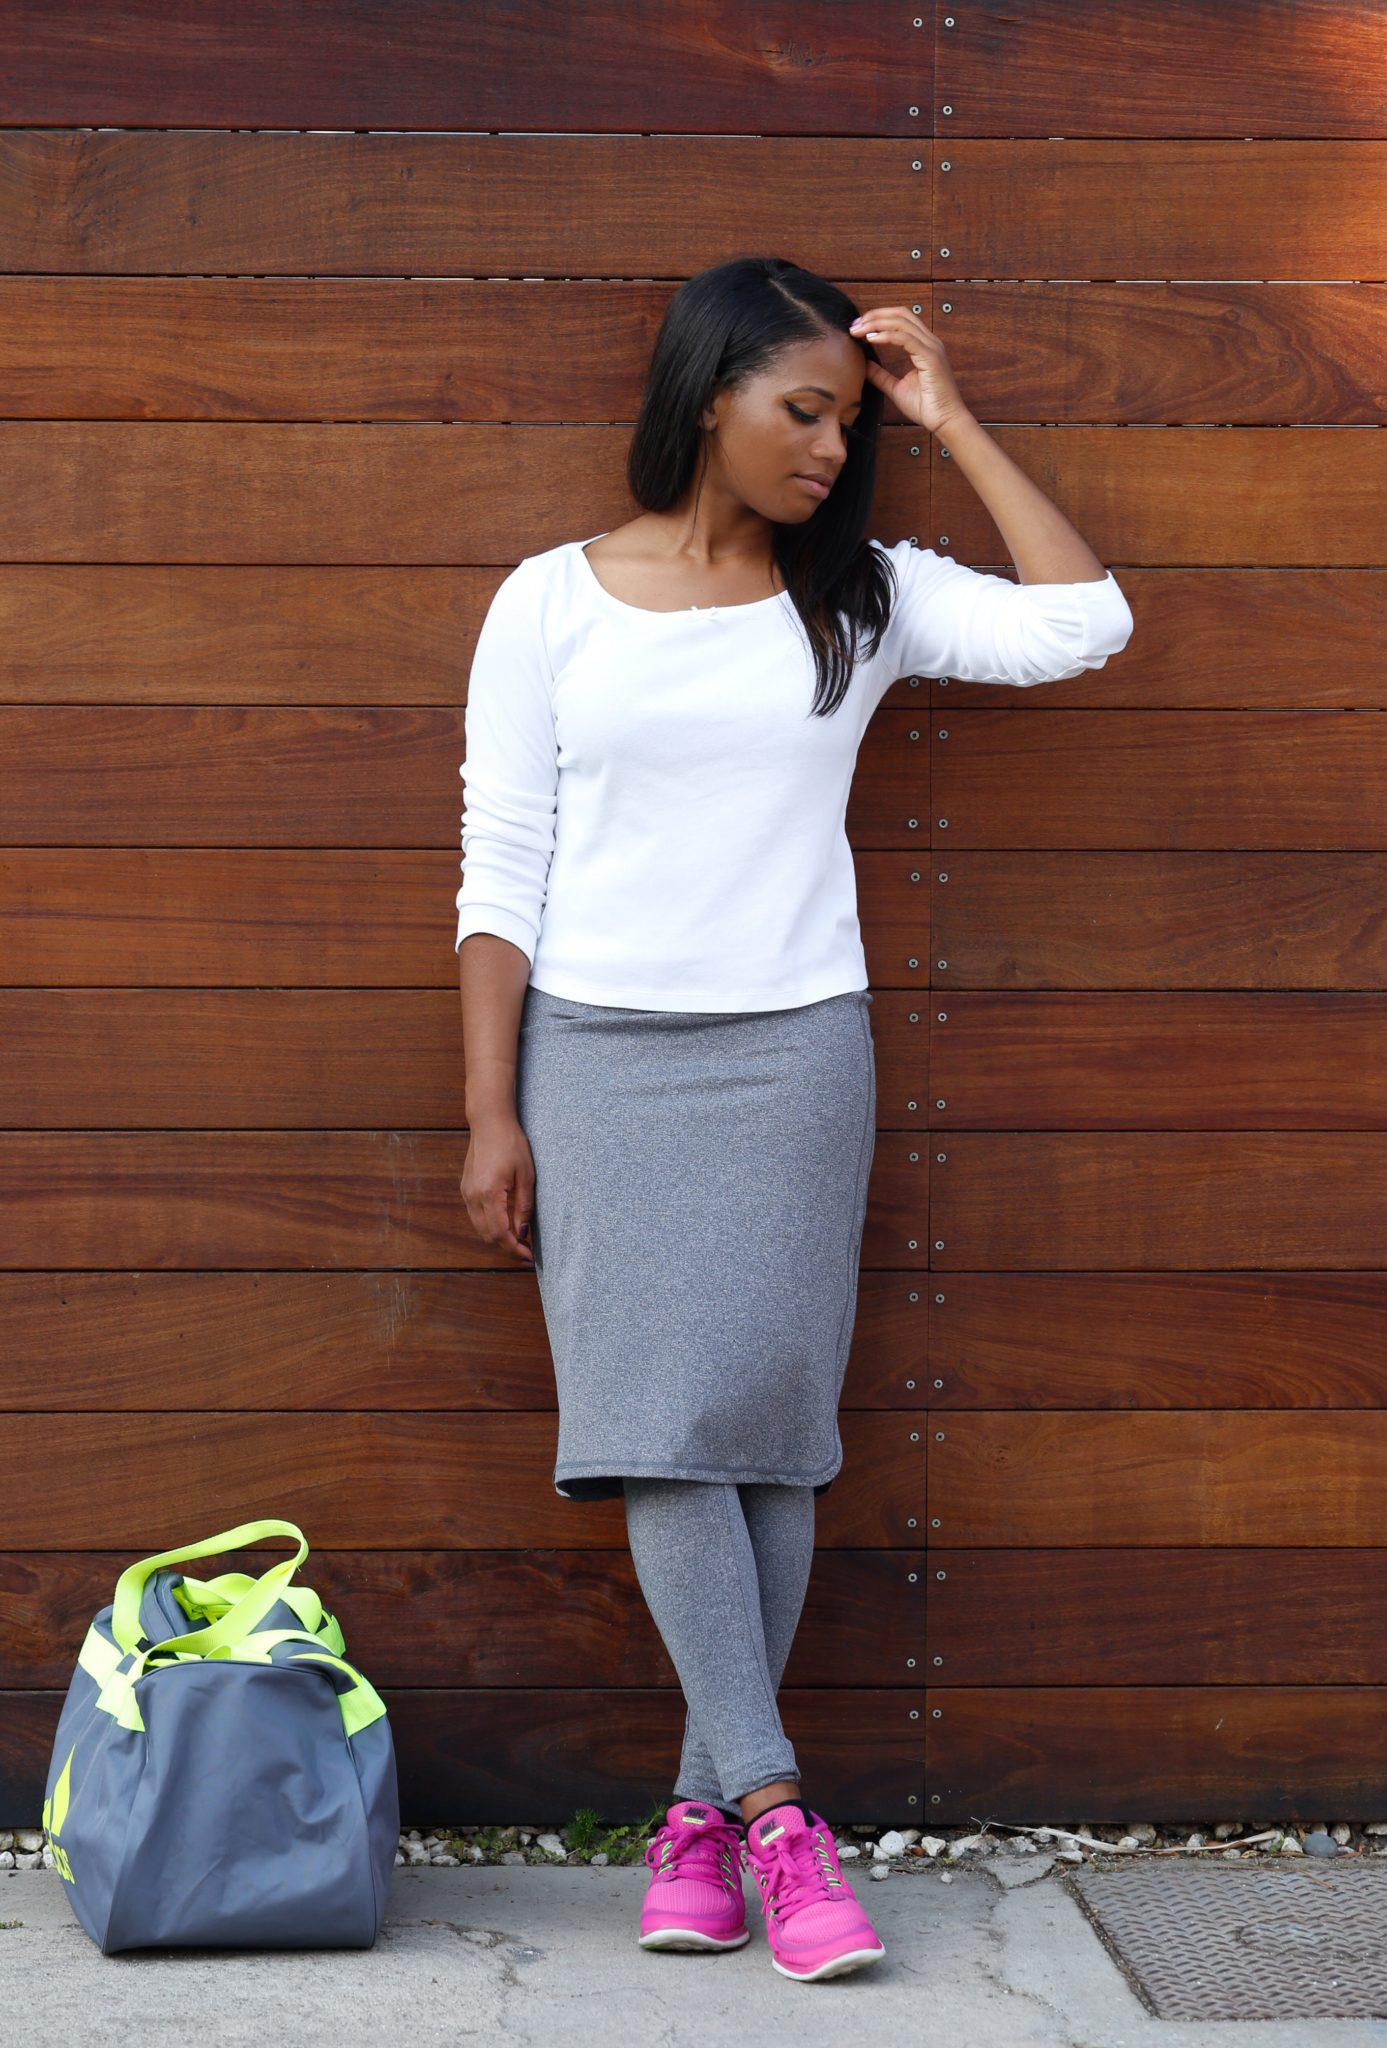 Modest workout skirt from @Snoga review on DowntownDemure.com